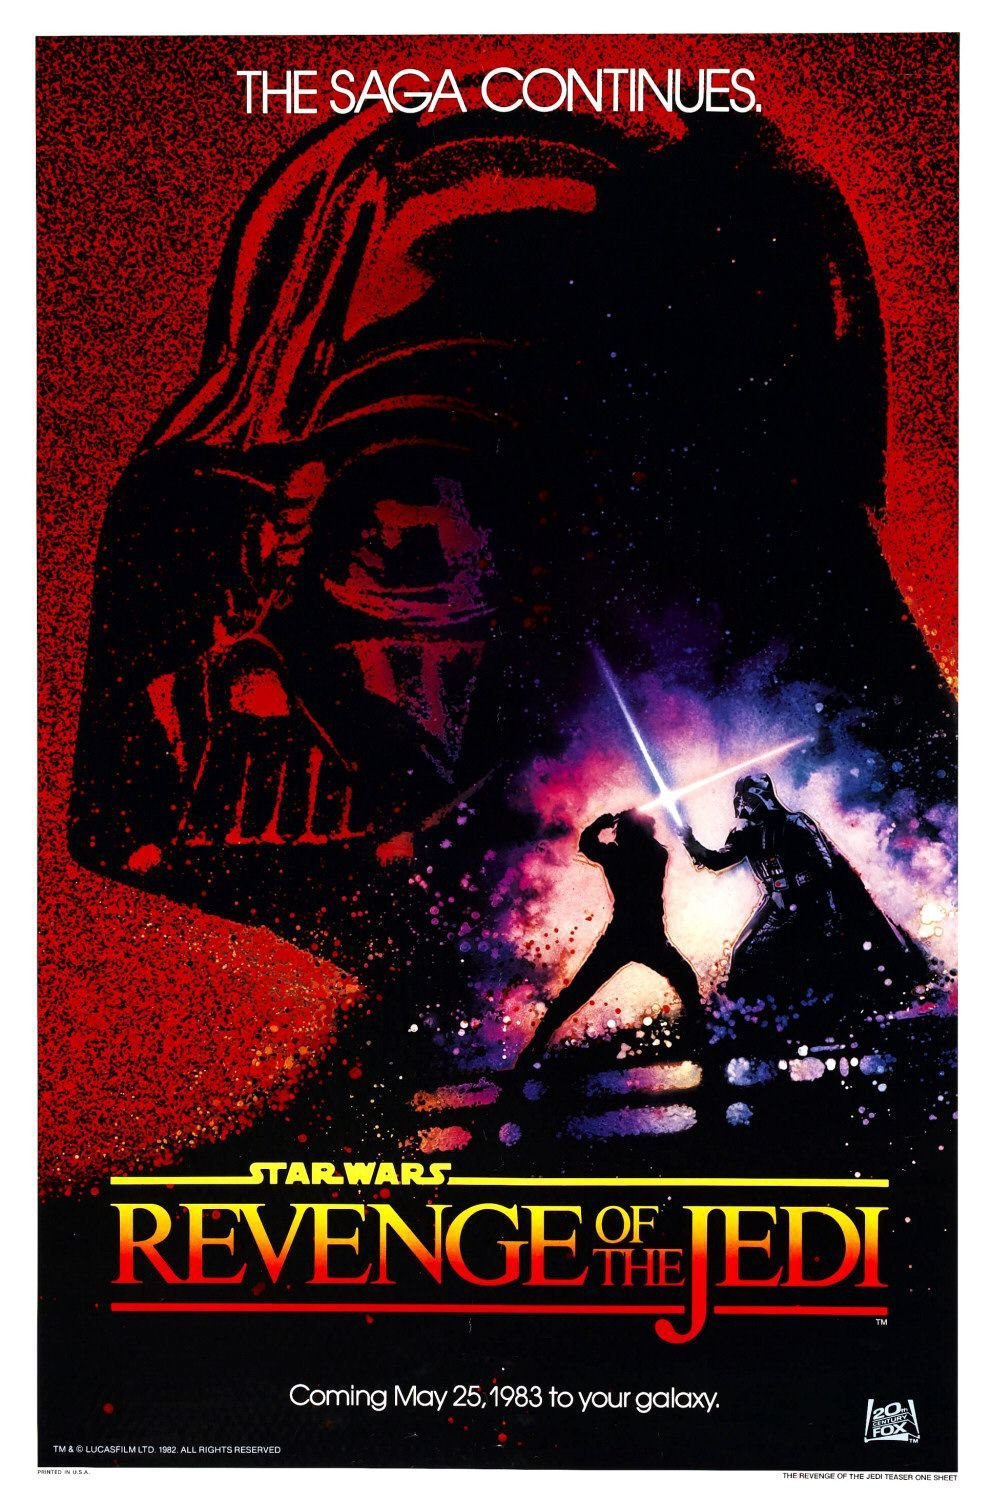 Red revenge of the jedi poster